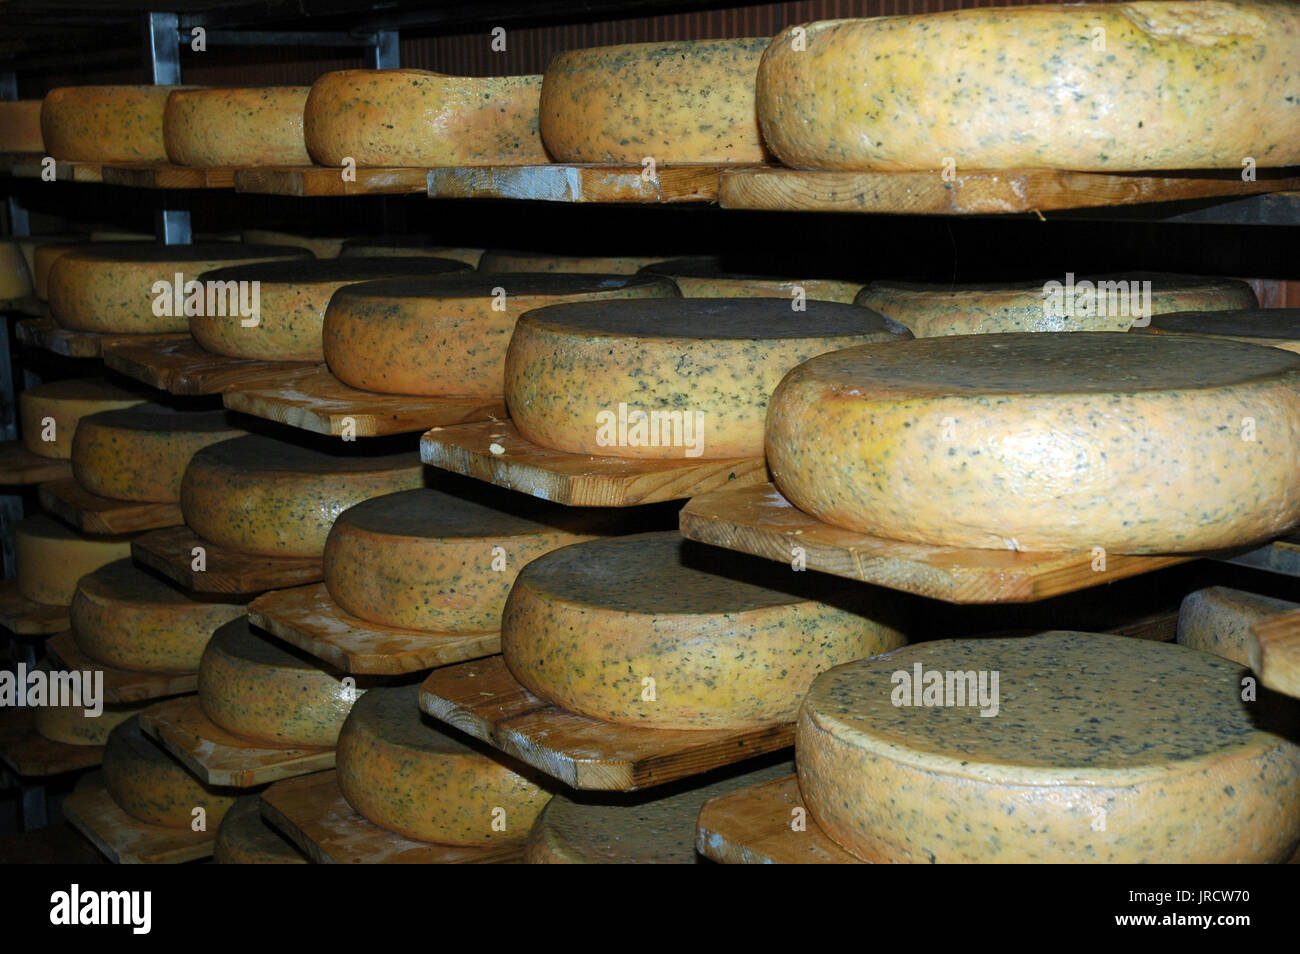 cheese maturing on wooden shelves - Stock Image